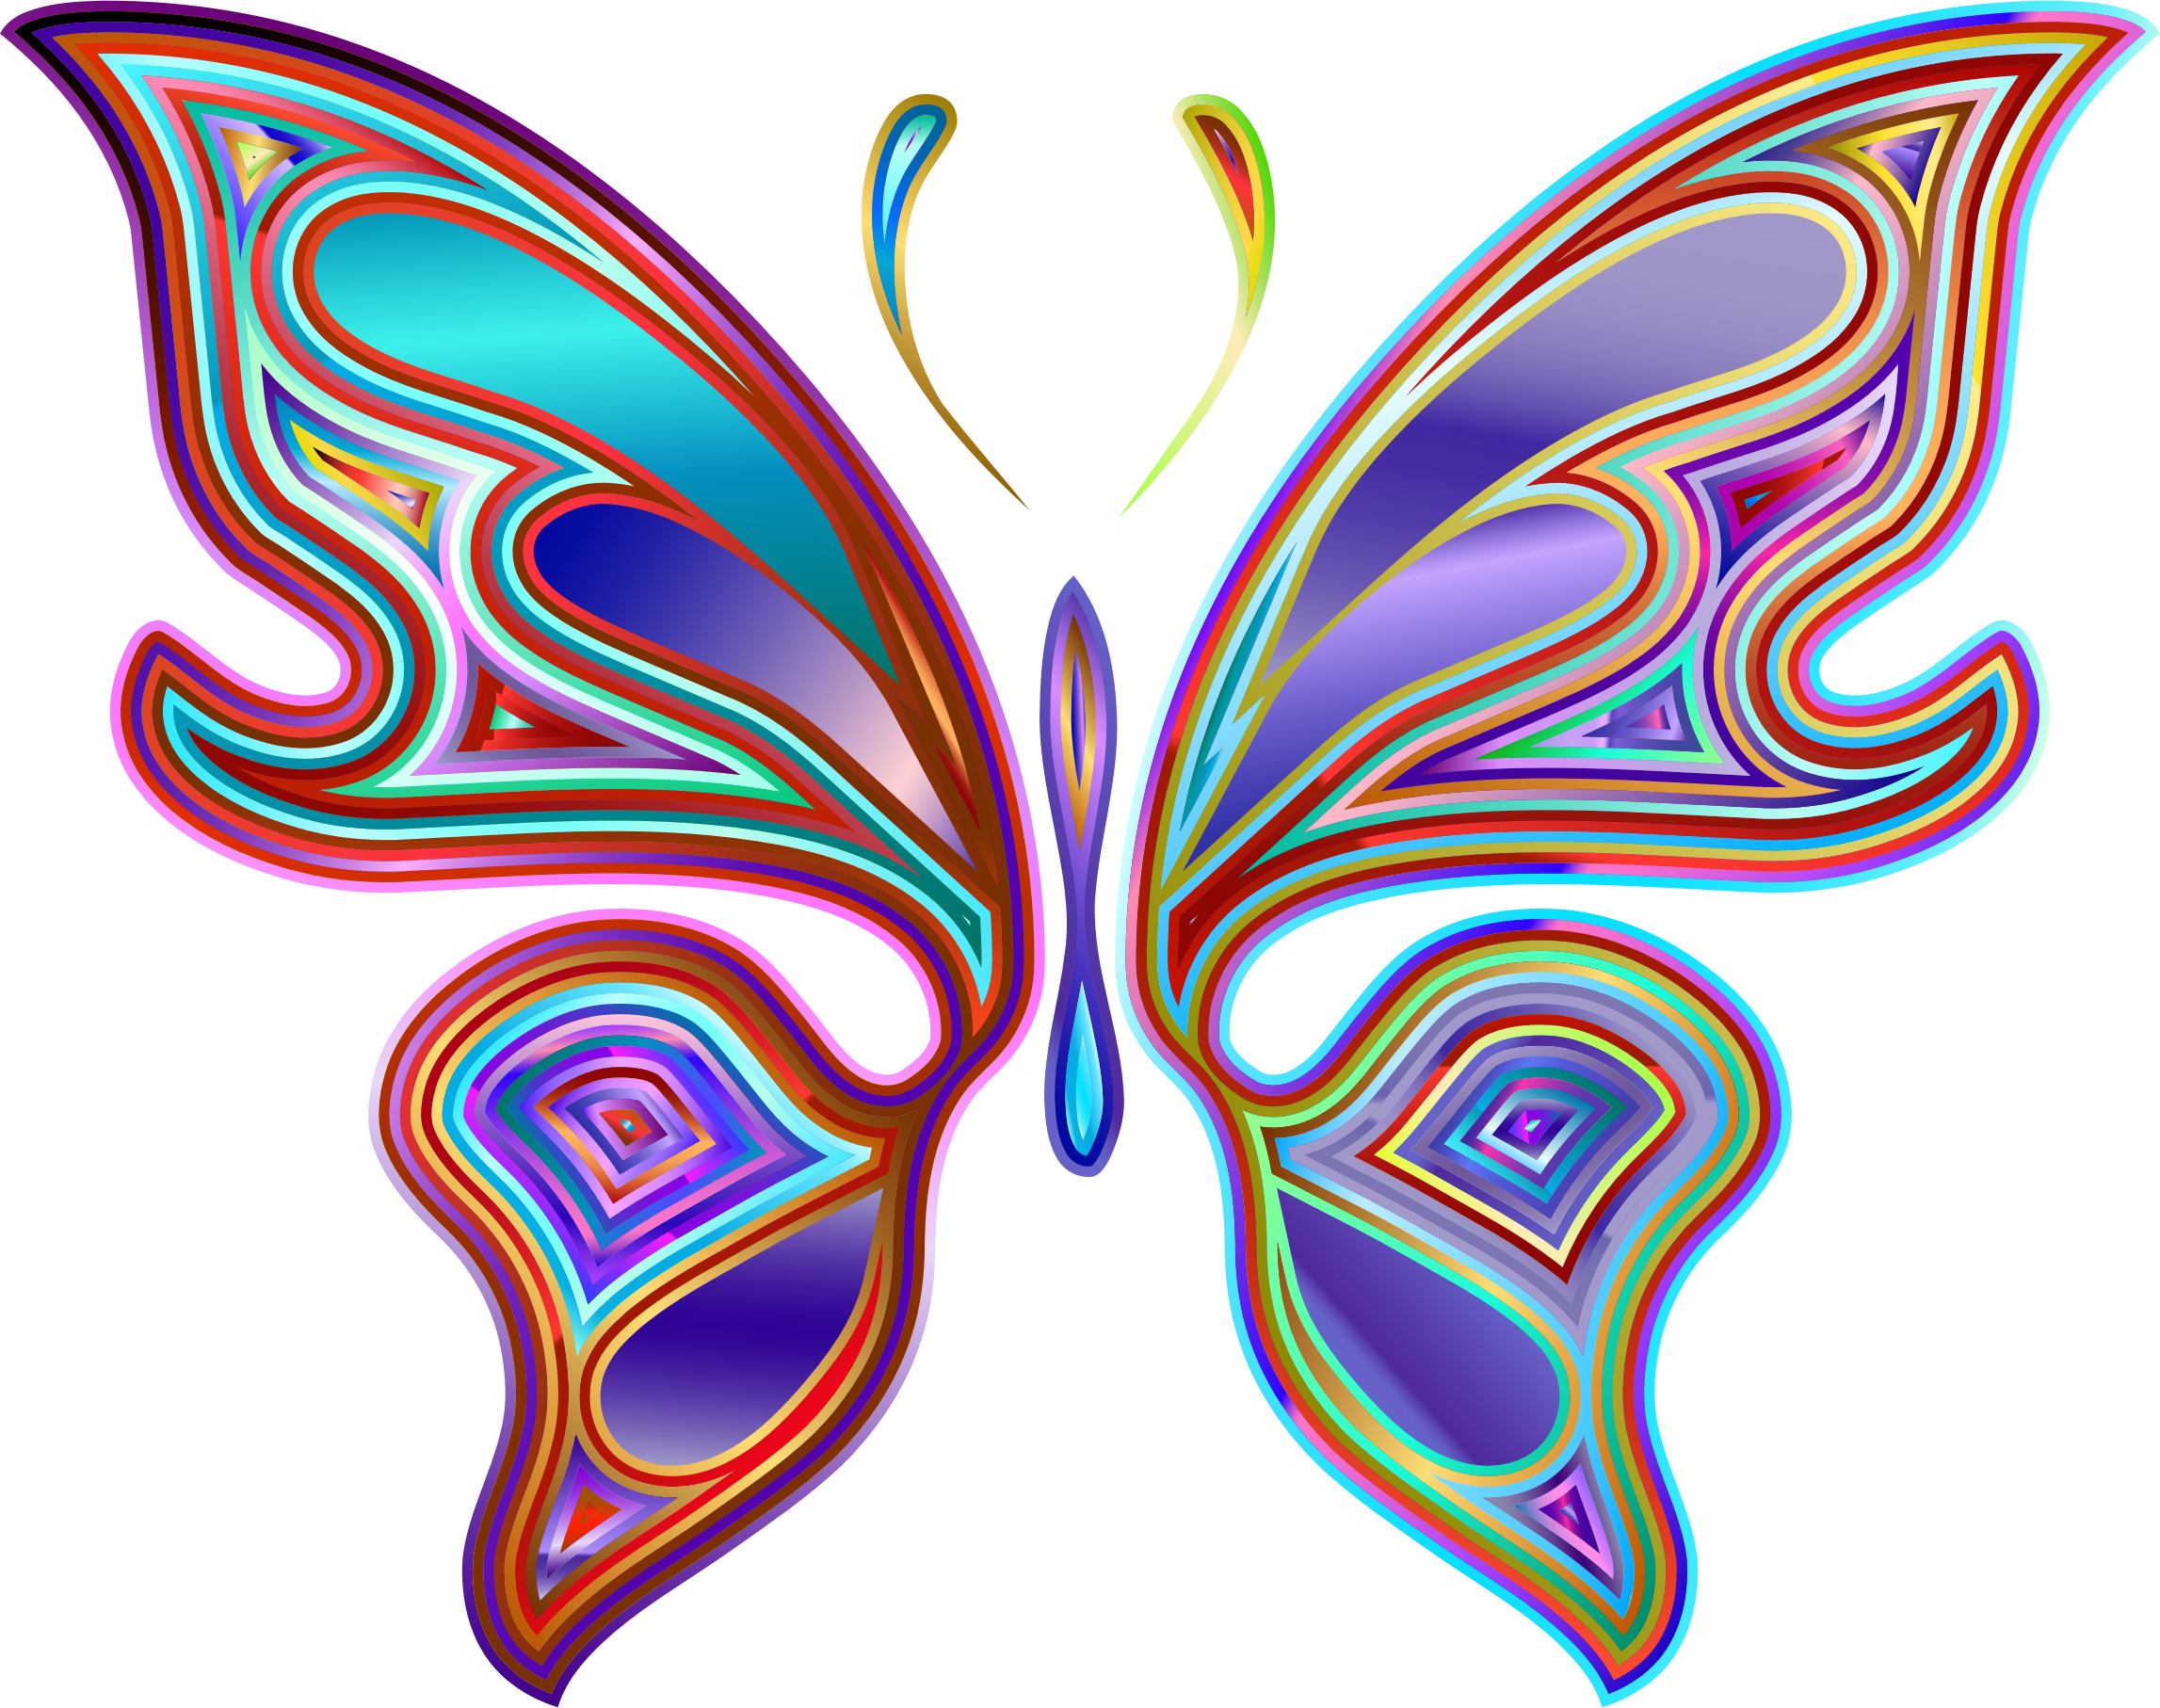 Prismatic Butterfly 6 Variation 2 by GDJ